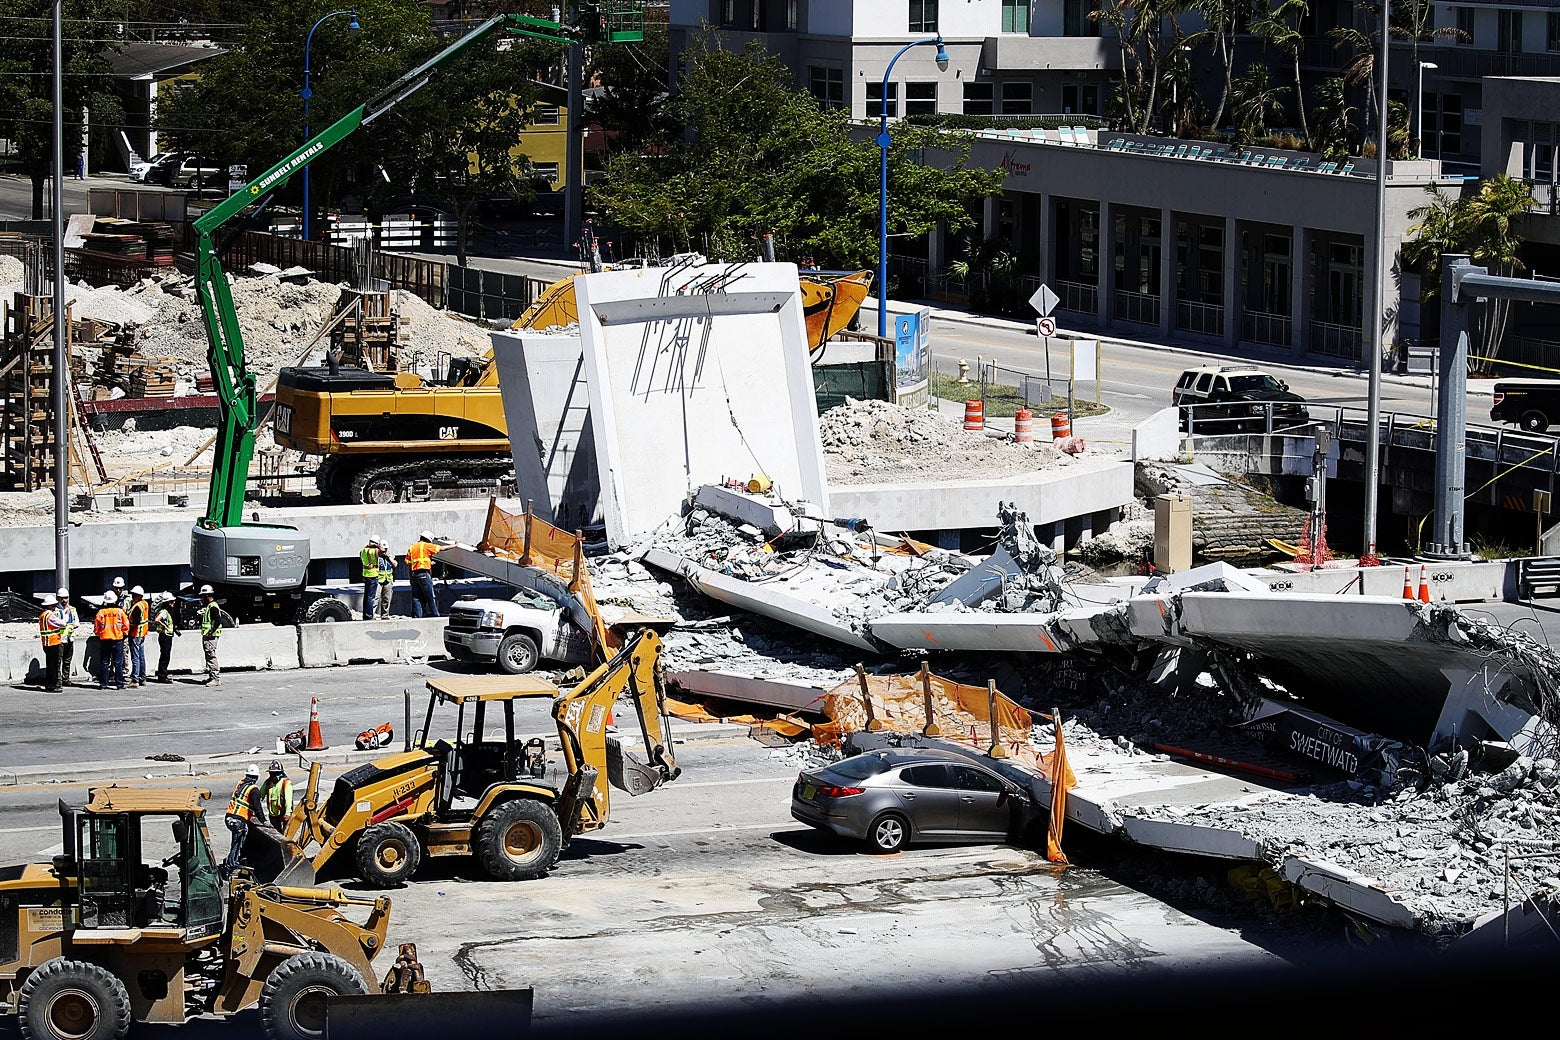 Law enforcement and members of the National Transportation Safety Board investigate the scene where a pedestrian bridge collapsed a few days in Miami, Florida.